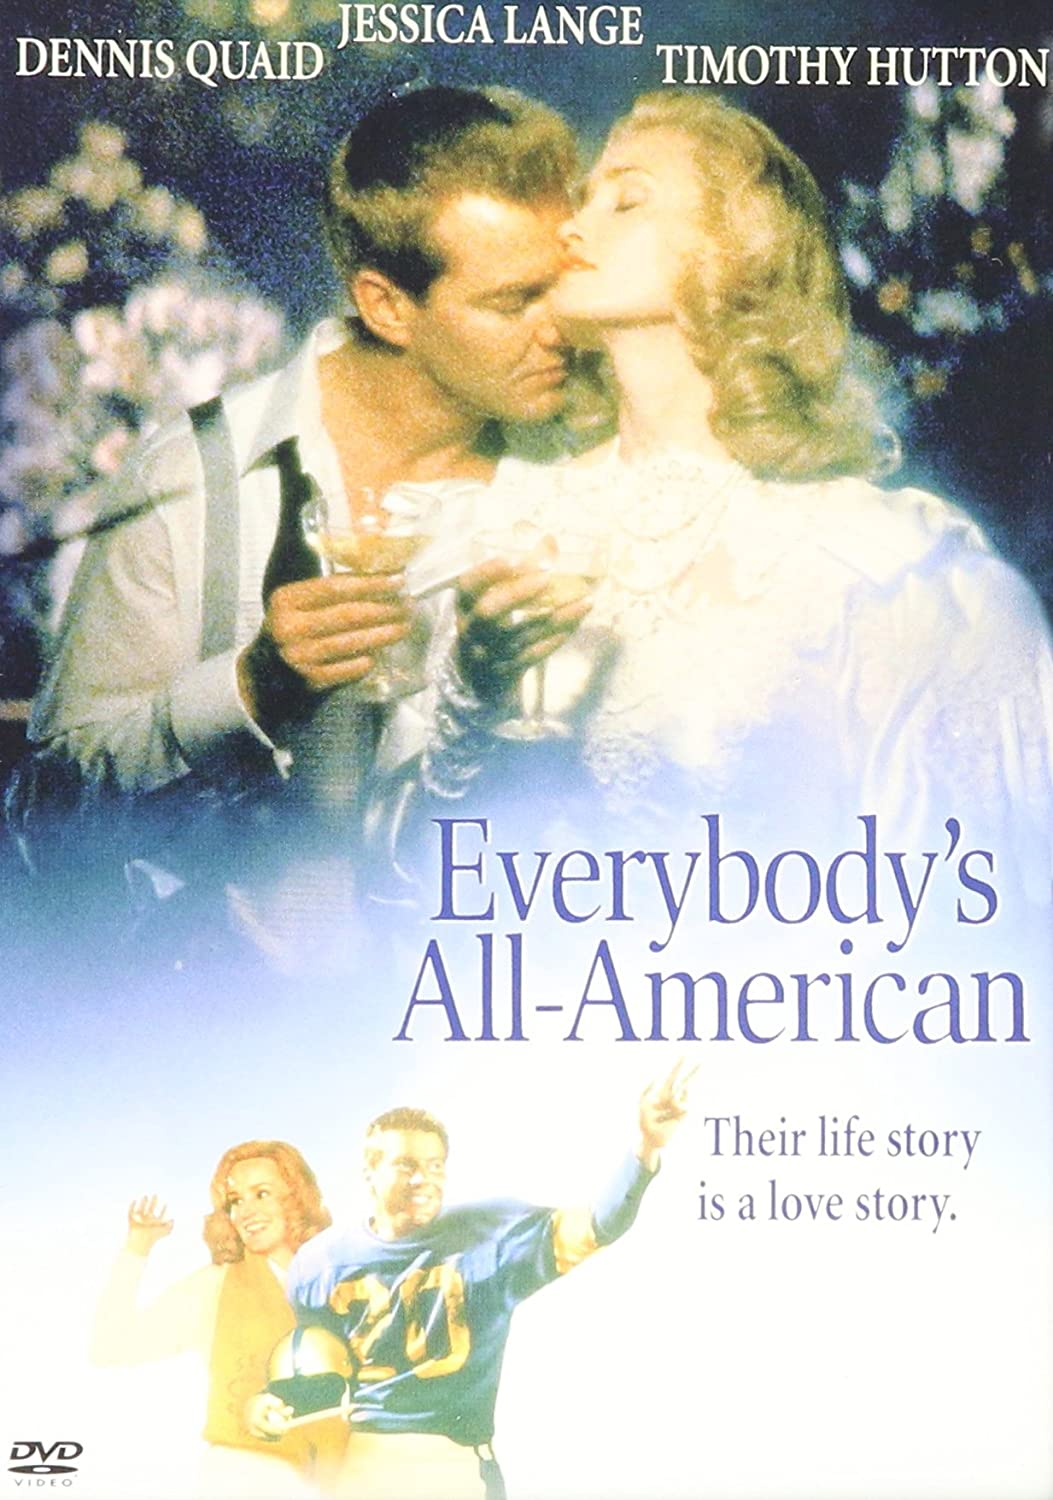 Jessica Lange Everybody's All American - US nudes (67 images)